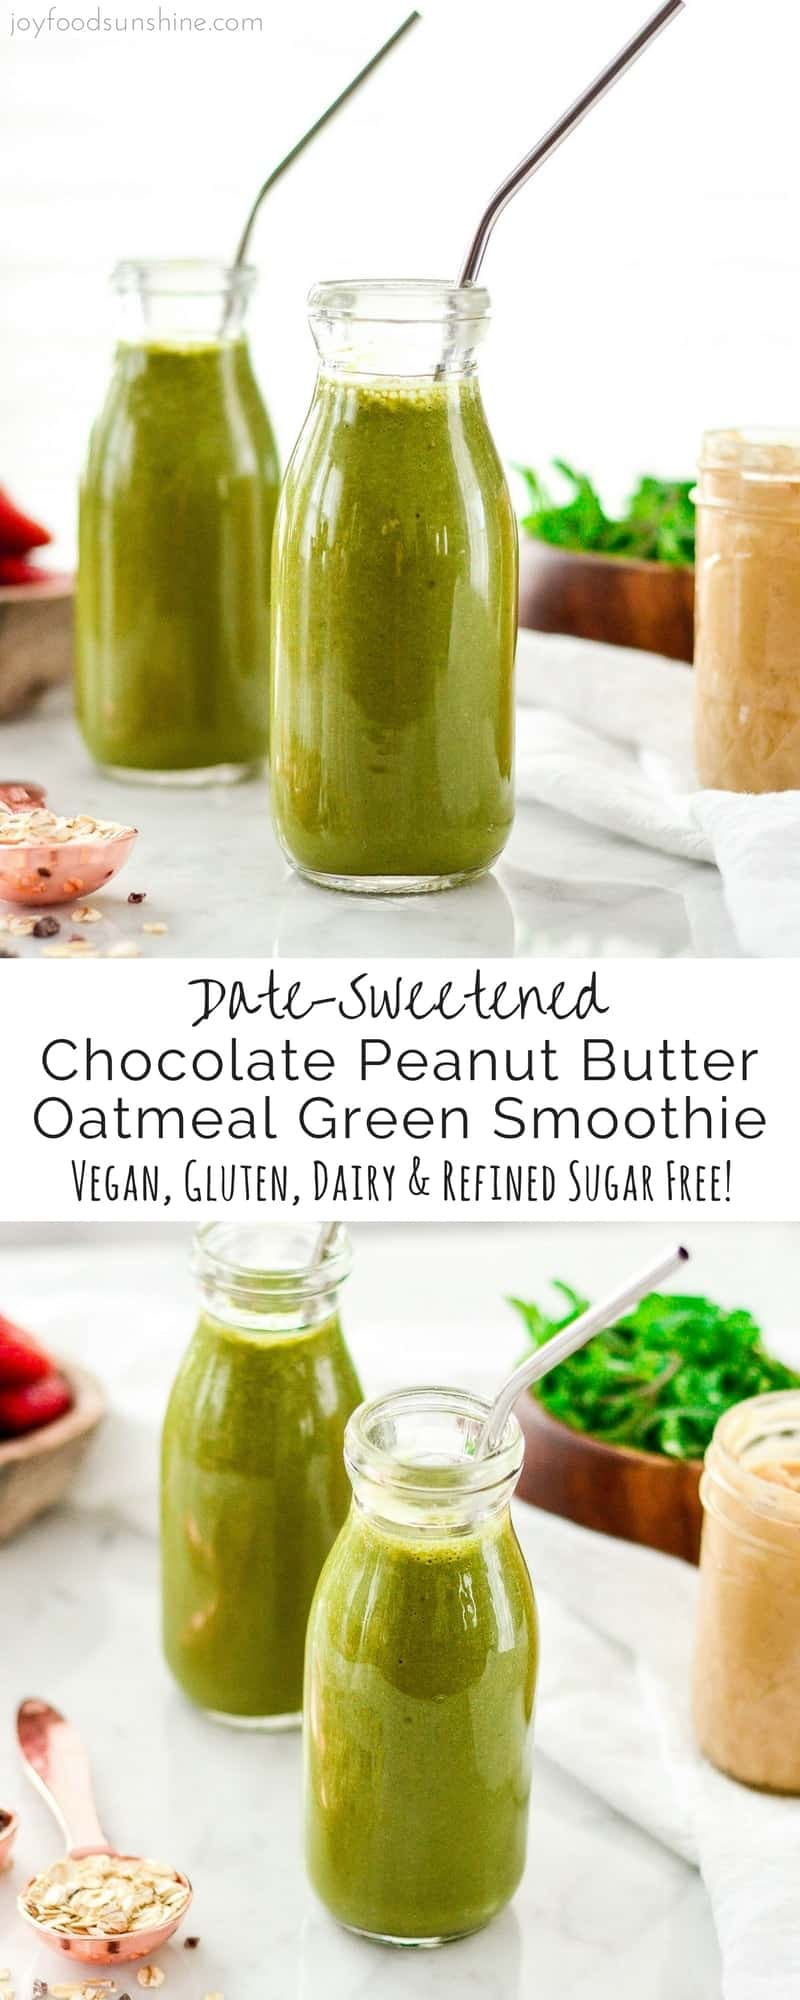 This Chocolate Peanut Butter Green Smoothie has no added sugar or protein powders! It's an entire breakfast in a glass! Vegan, gluten free and dairy free! #greensmoothie #breakfast #recipe #vitamix #chocolate #peanutbutter